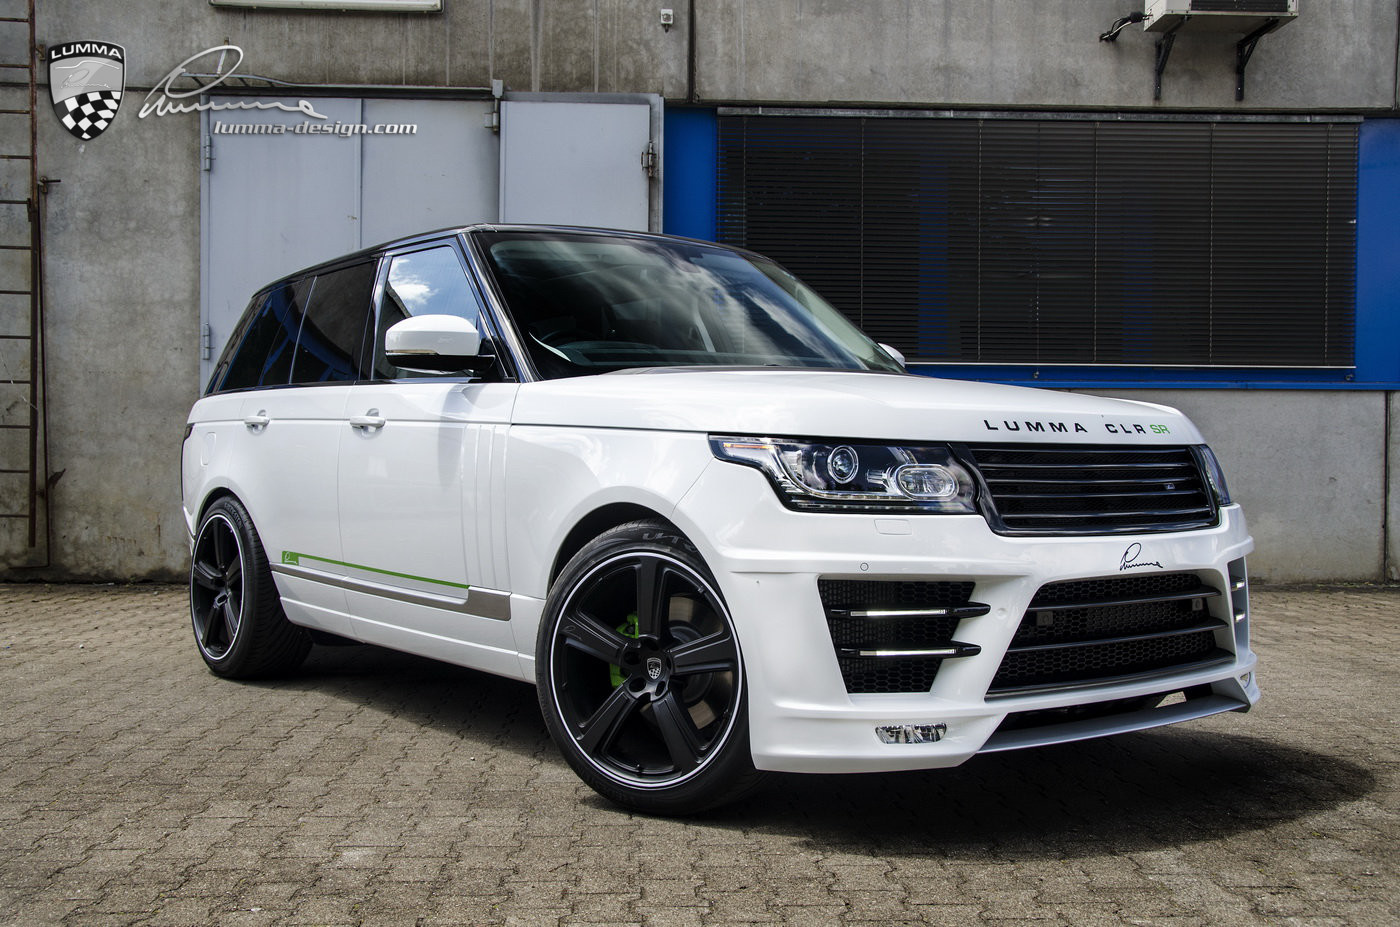 LUMMA-NEWS: CLR SR Conversion based on Range Rover Vogue